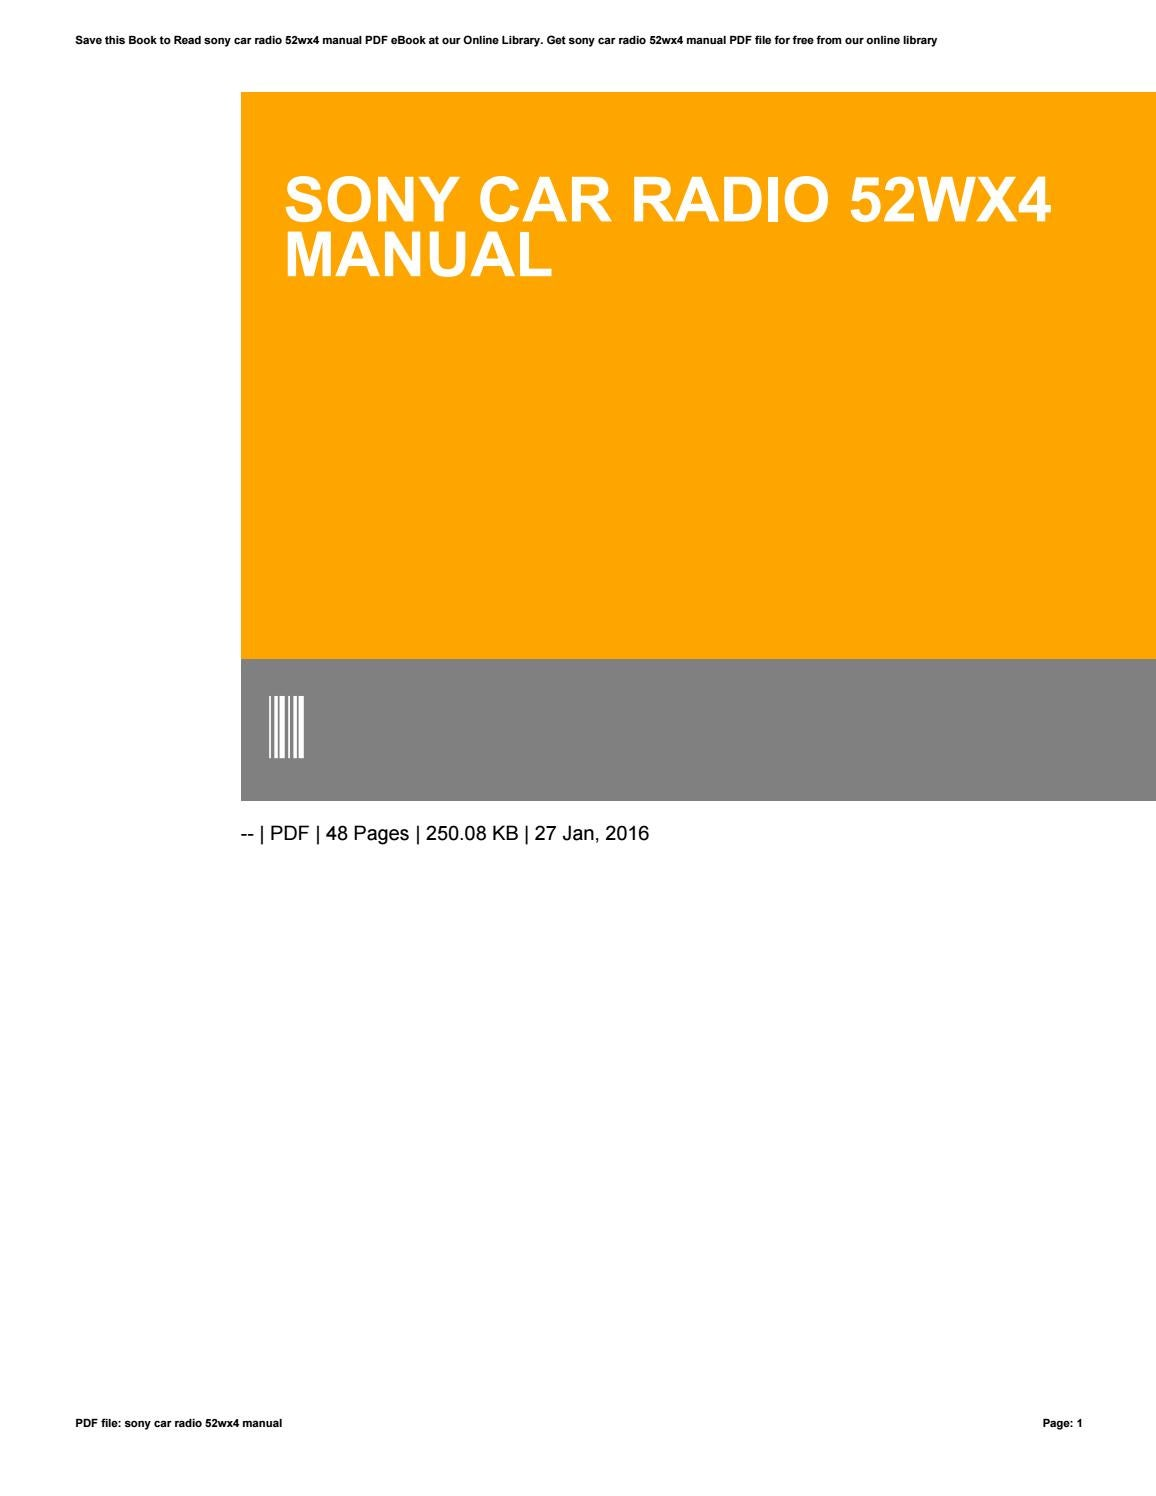 Sony Car Radio 52wx4 Manual By Lpo86 Issuu Stereo Manuals